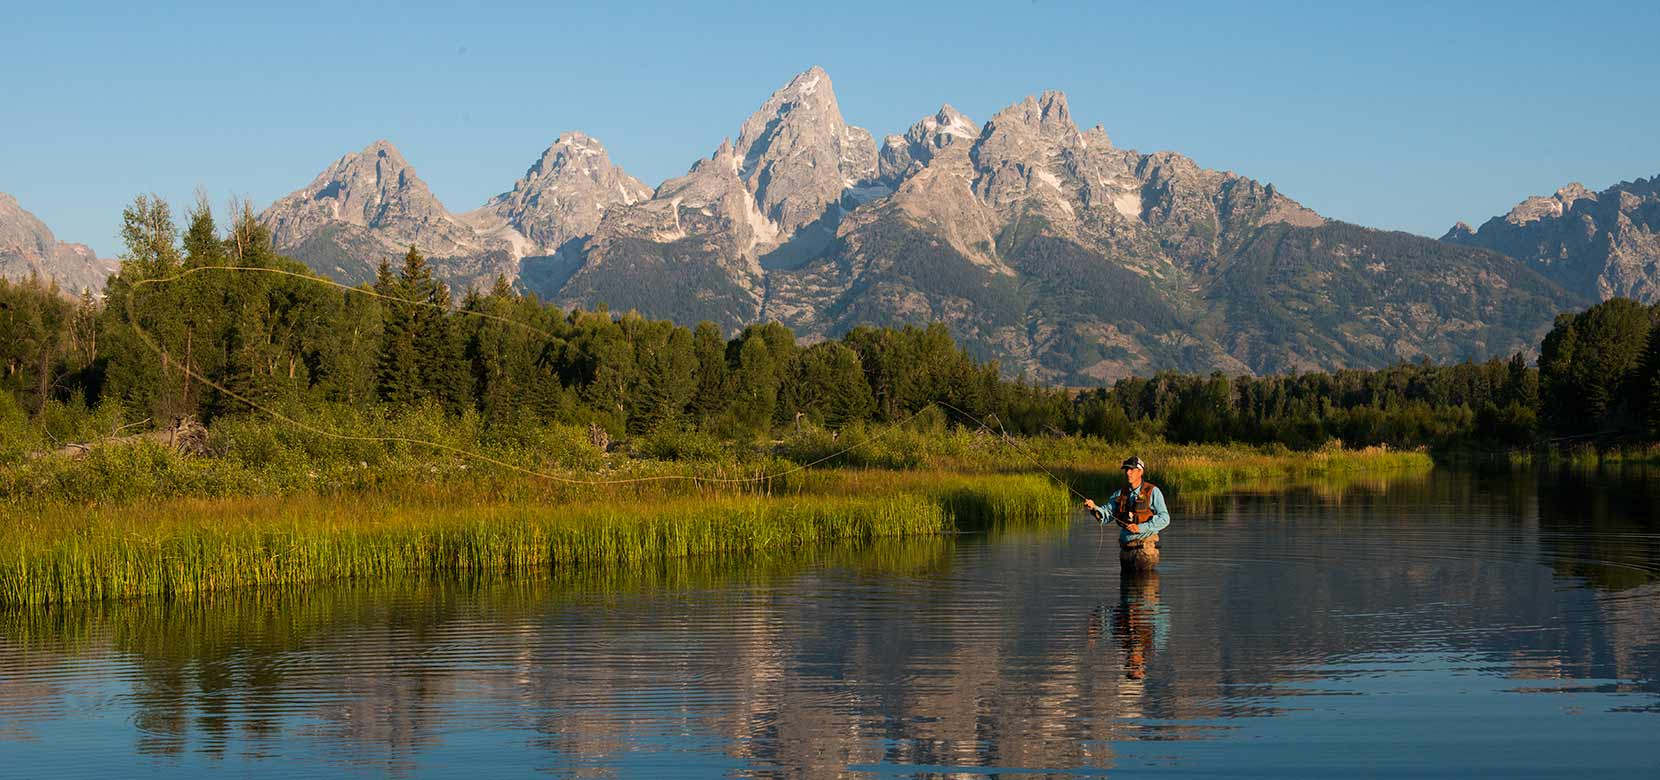 jackson hole fly fishing jackson hole traveler